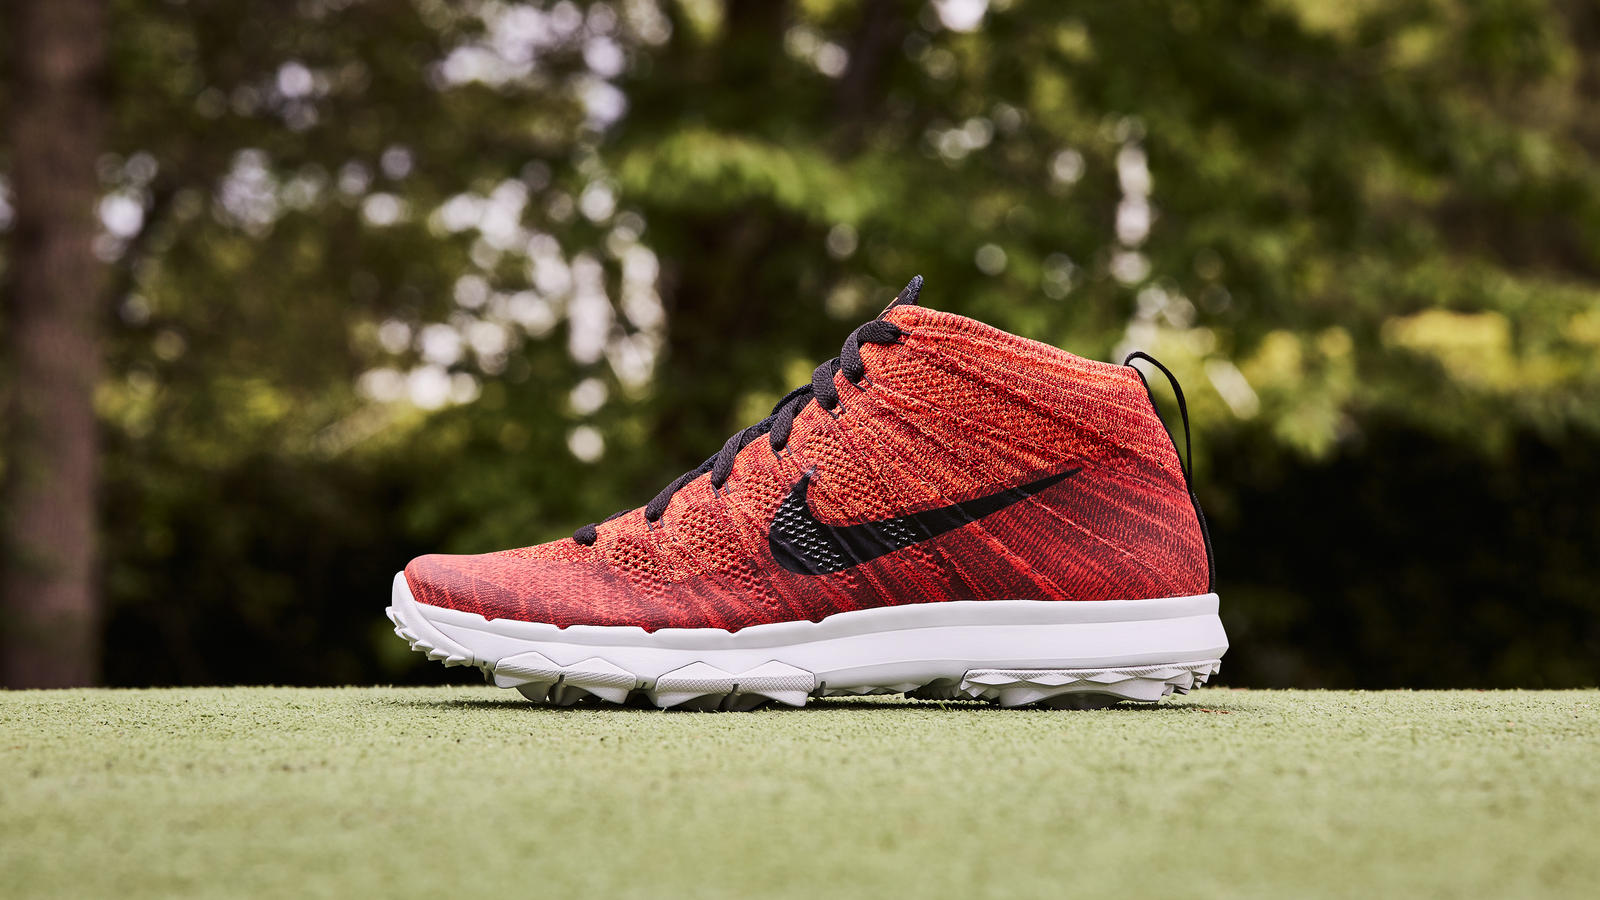 Nike news sneaker feed red flyknit golf 0392 p v1 hd 1600